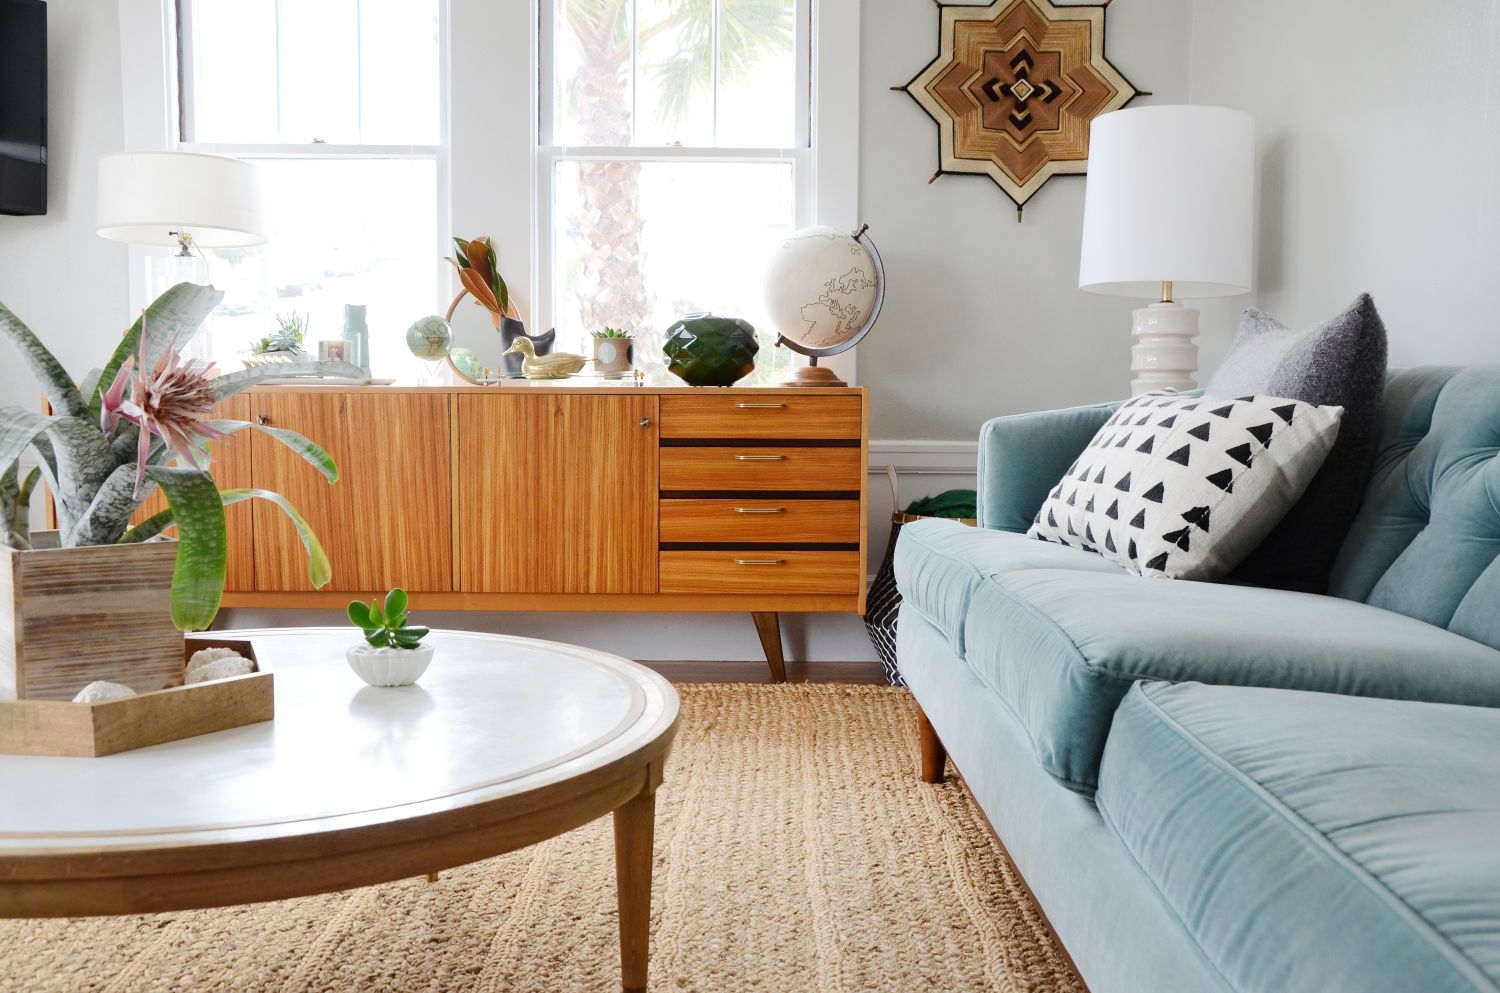 6 Pro Tricks to Know When Arranging Your Space